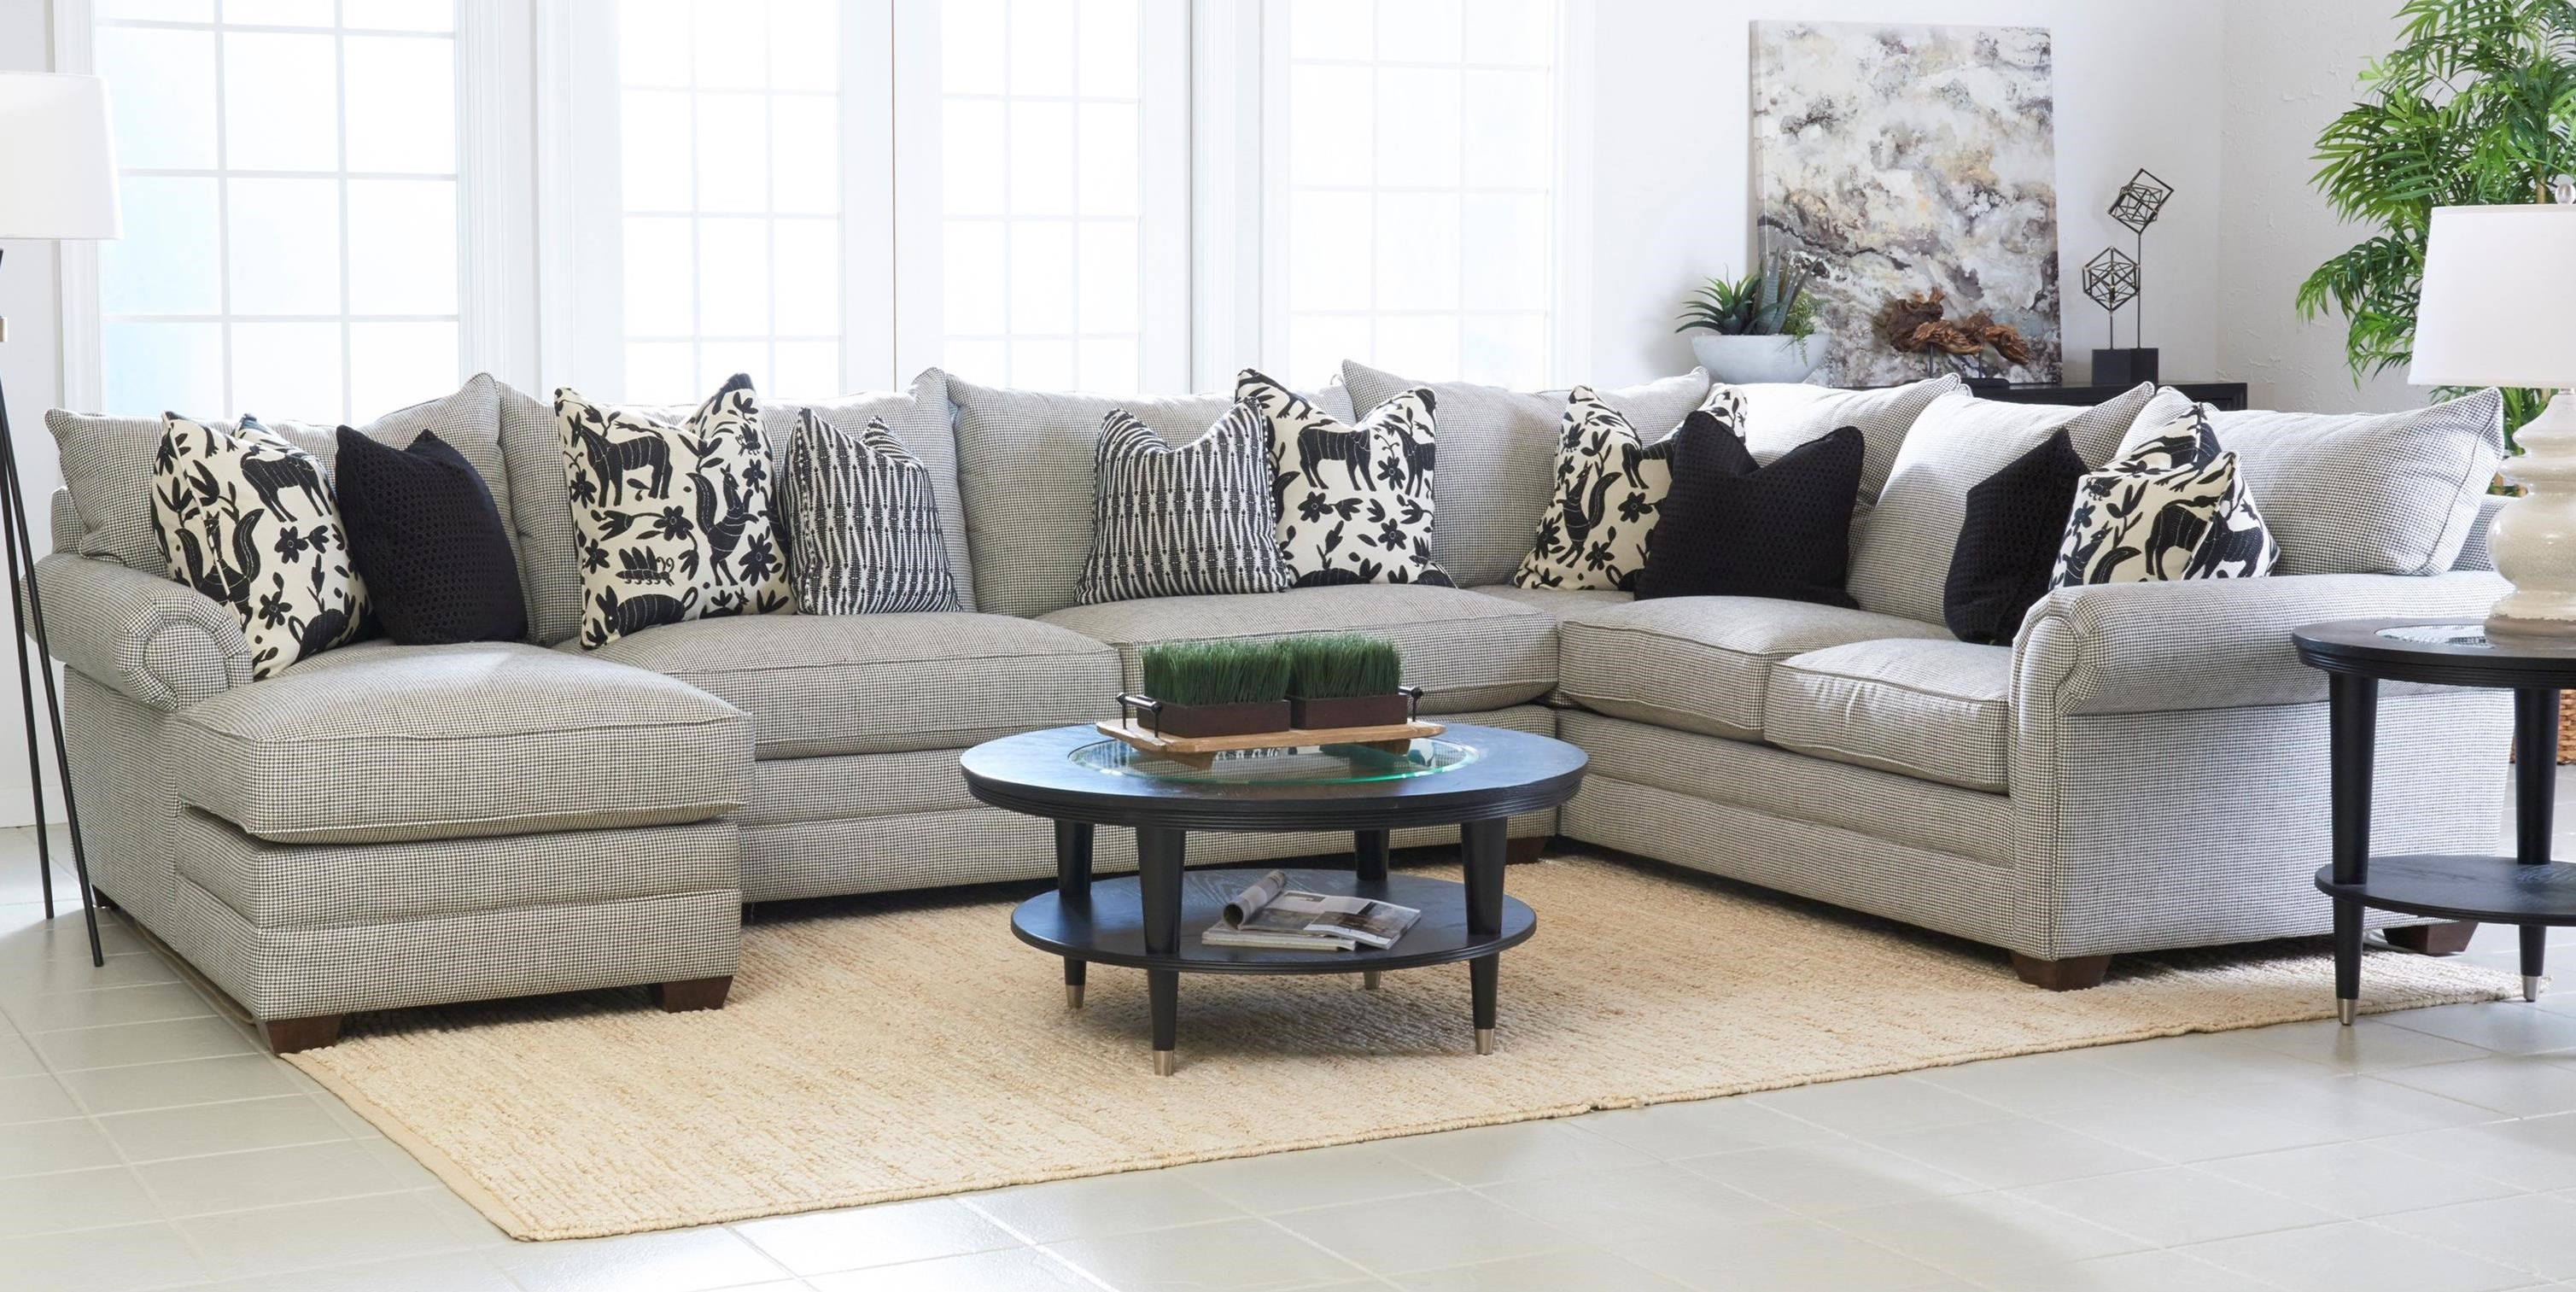 Elliston Place Huntley4 Pc Sectional Sofa W/ LAF Chaise ...